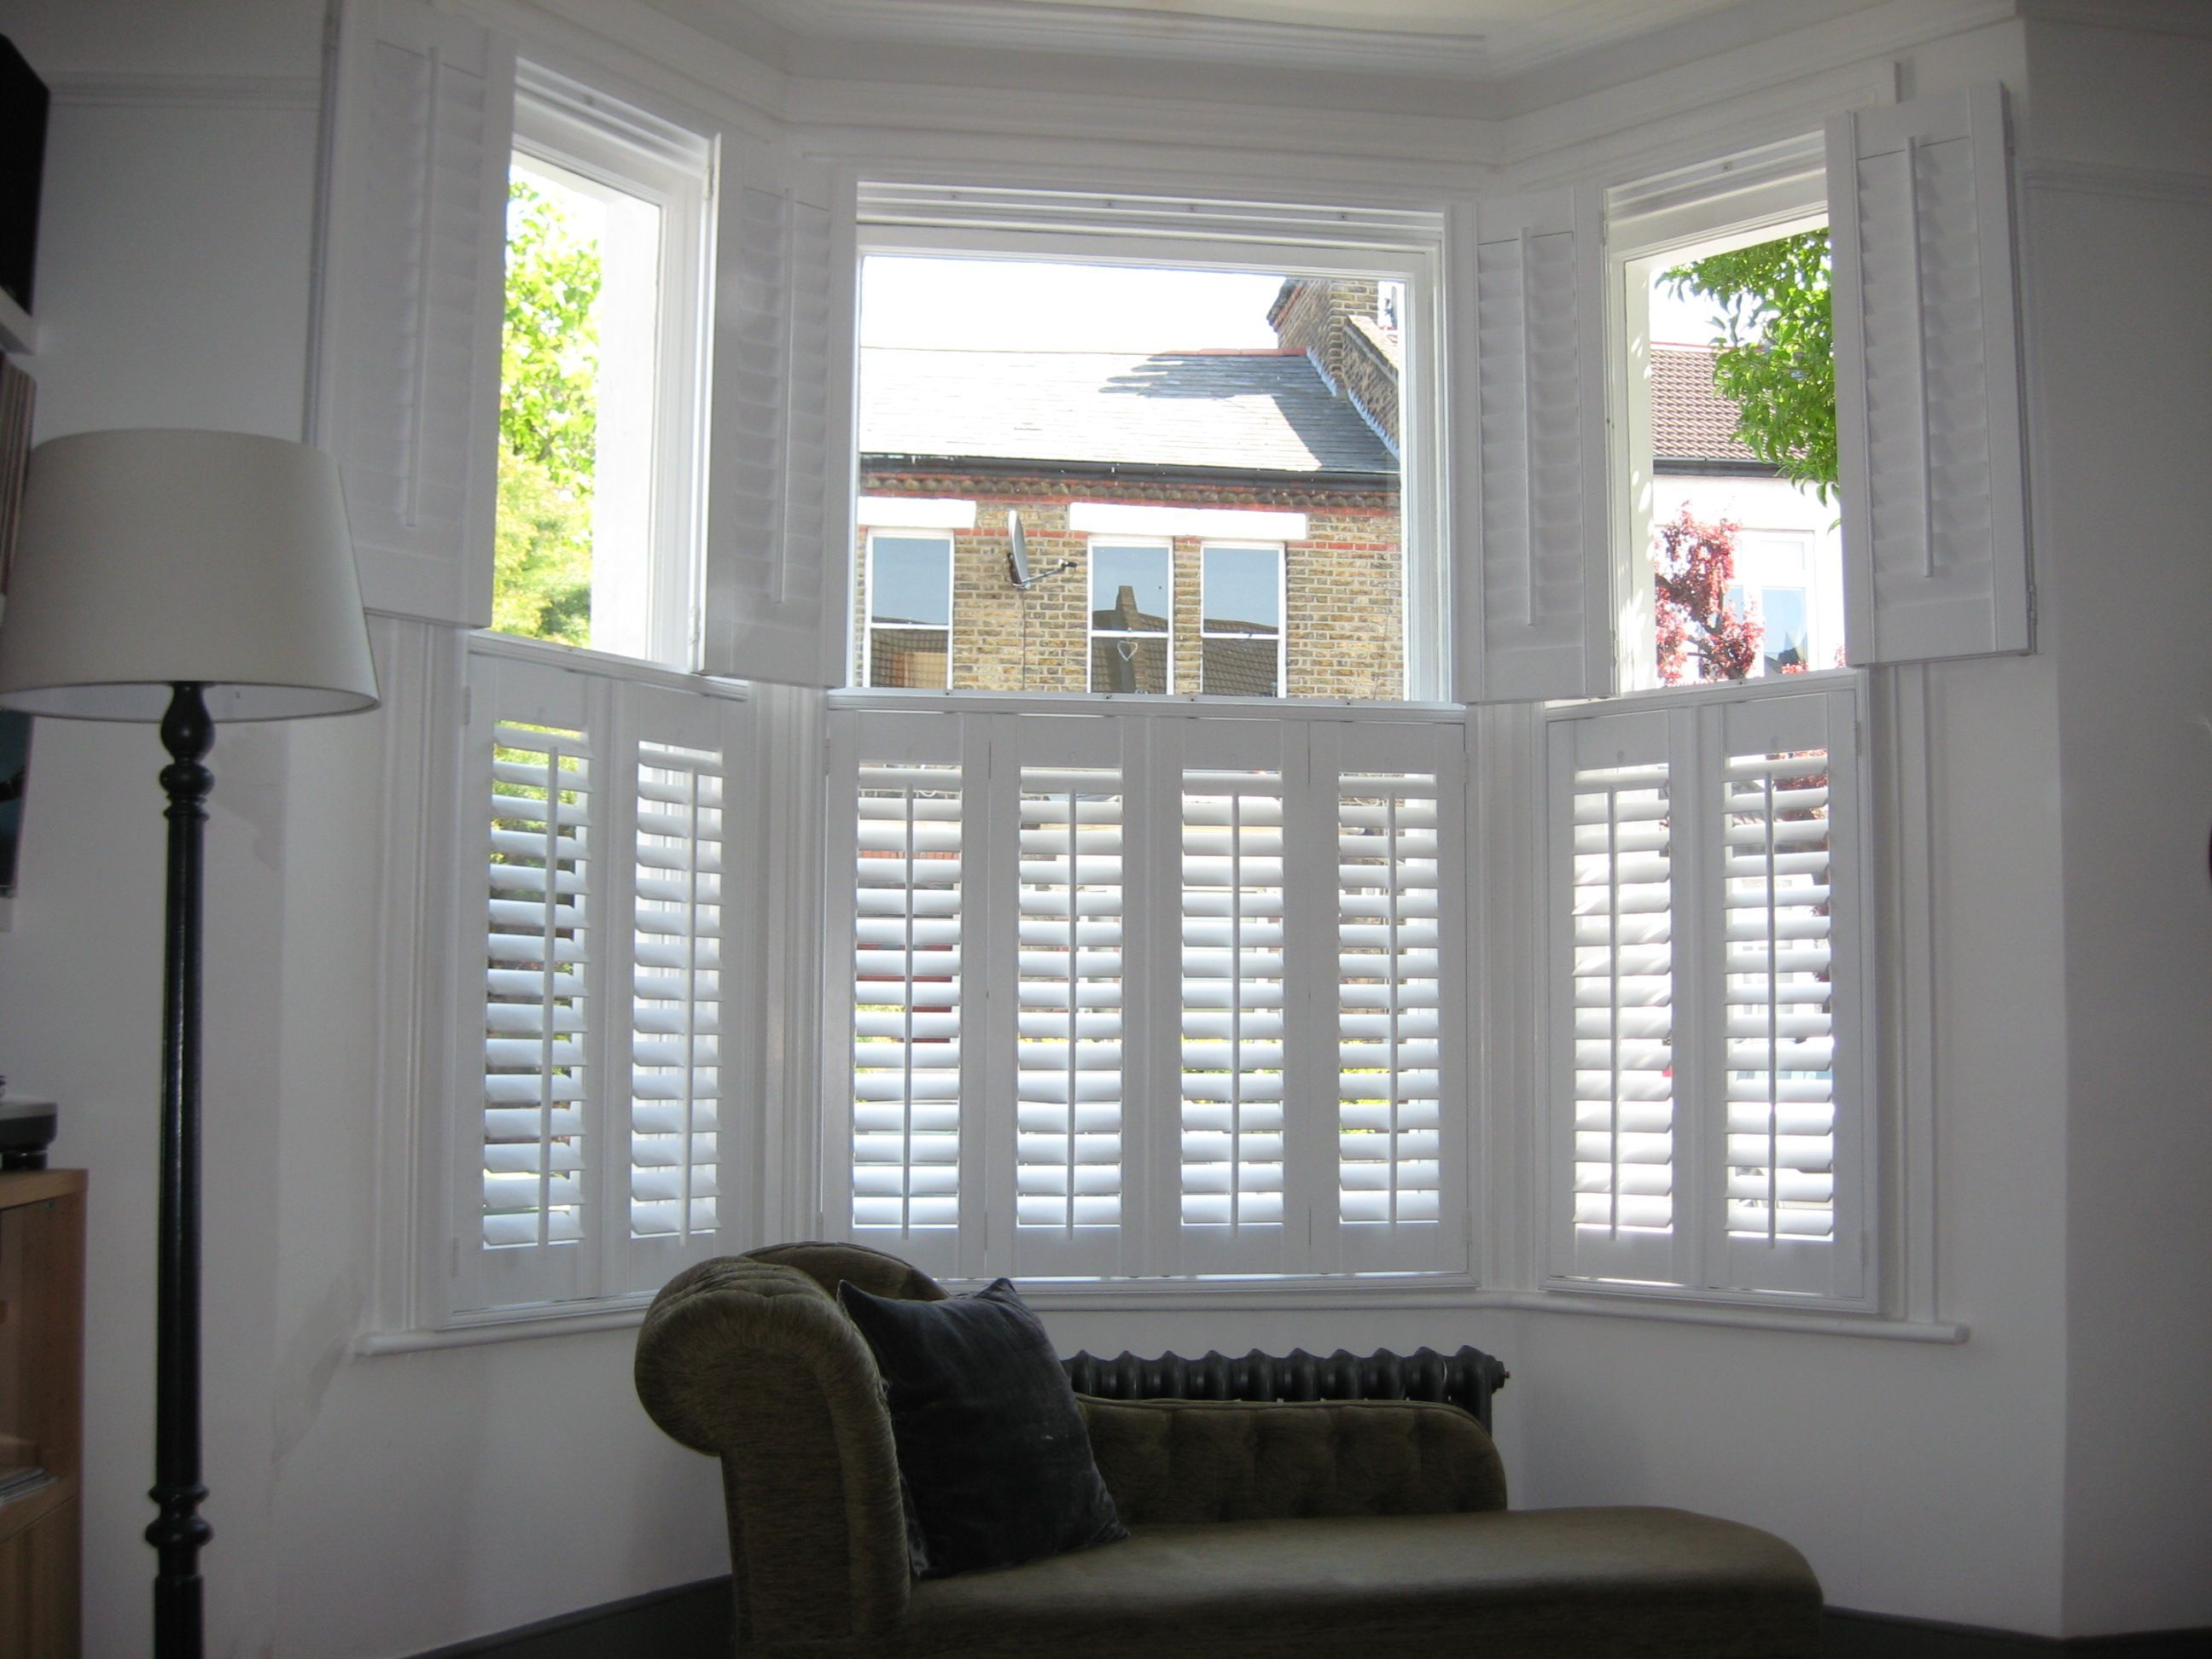 Tier On Tier Shutters Are Possibly The Most Flexible Style Of Shutters The Tiers Can Be